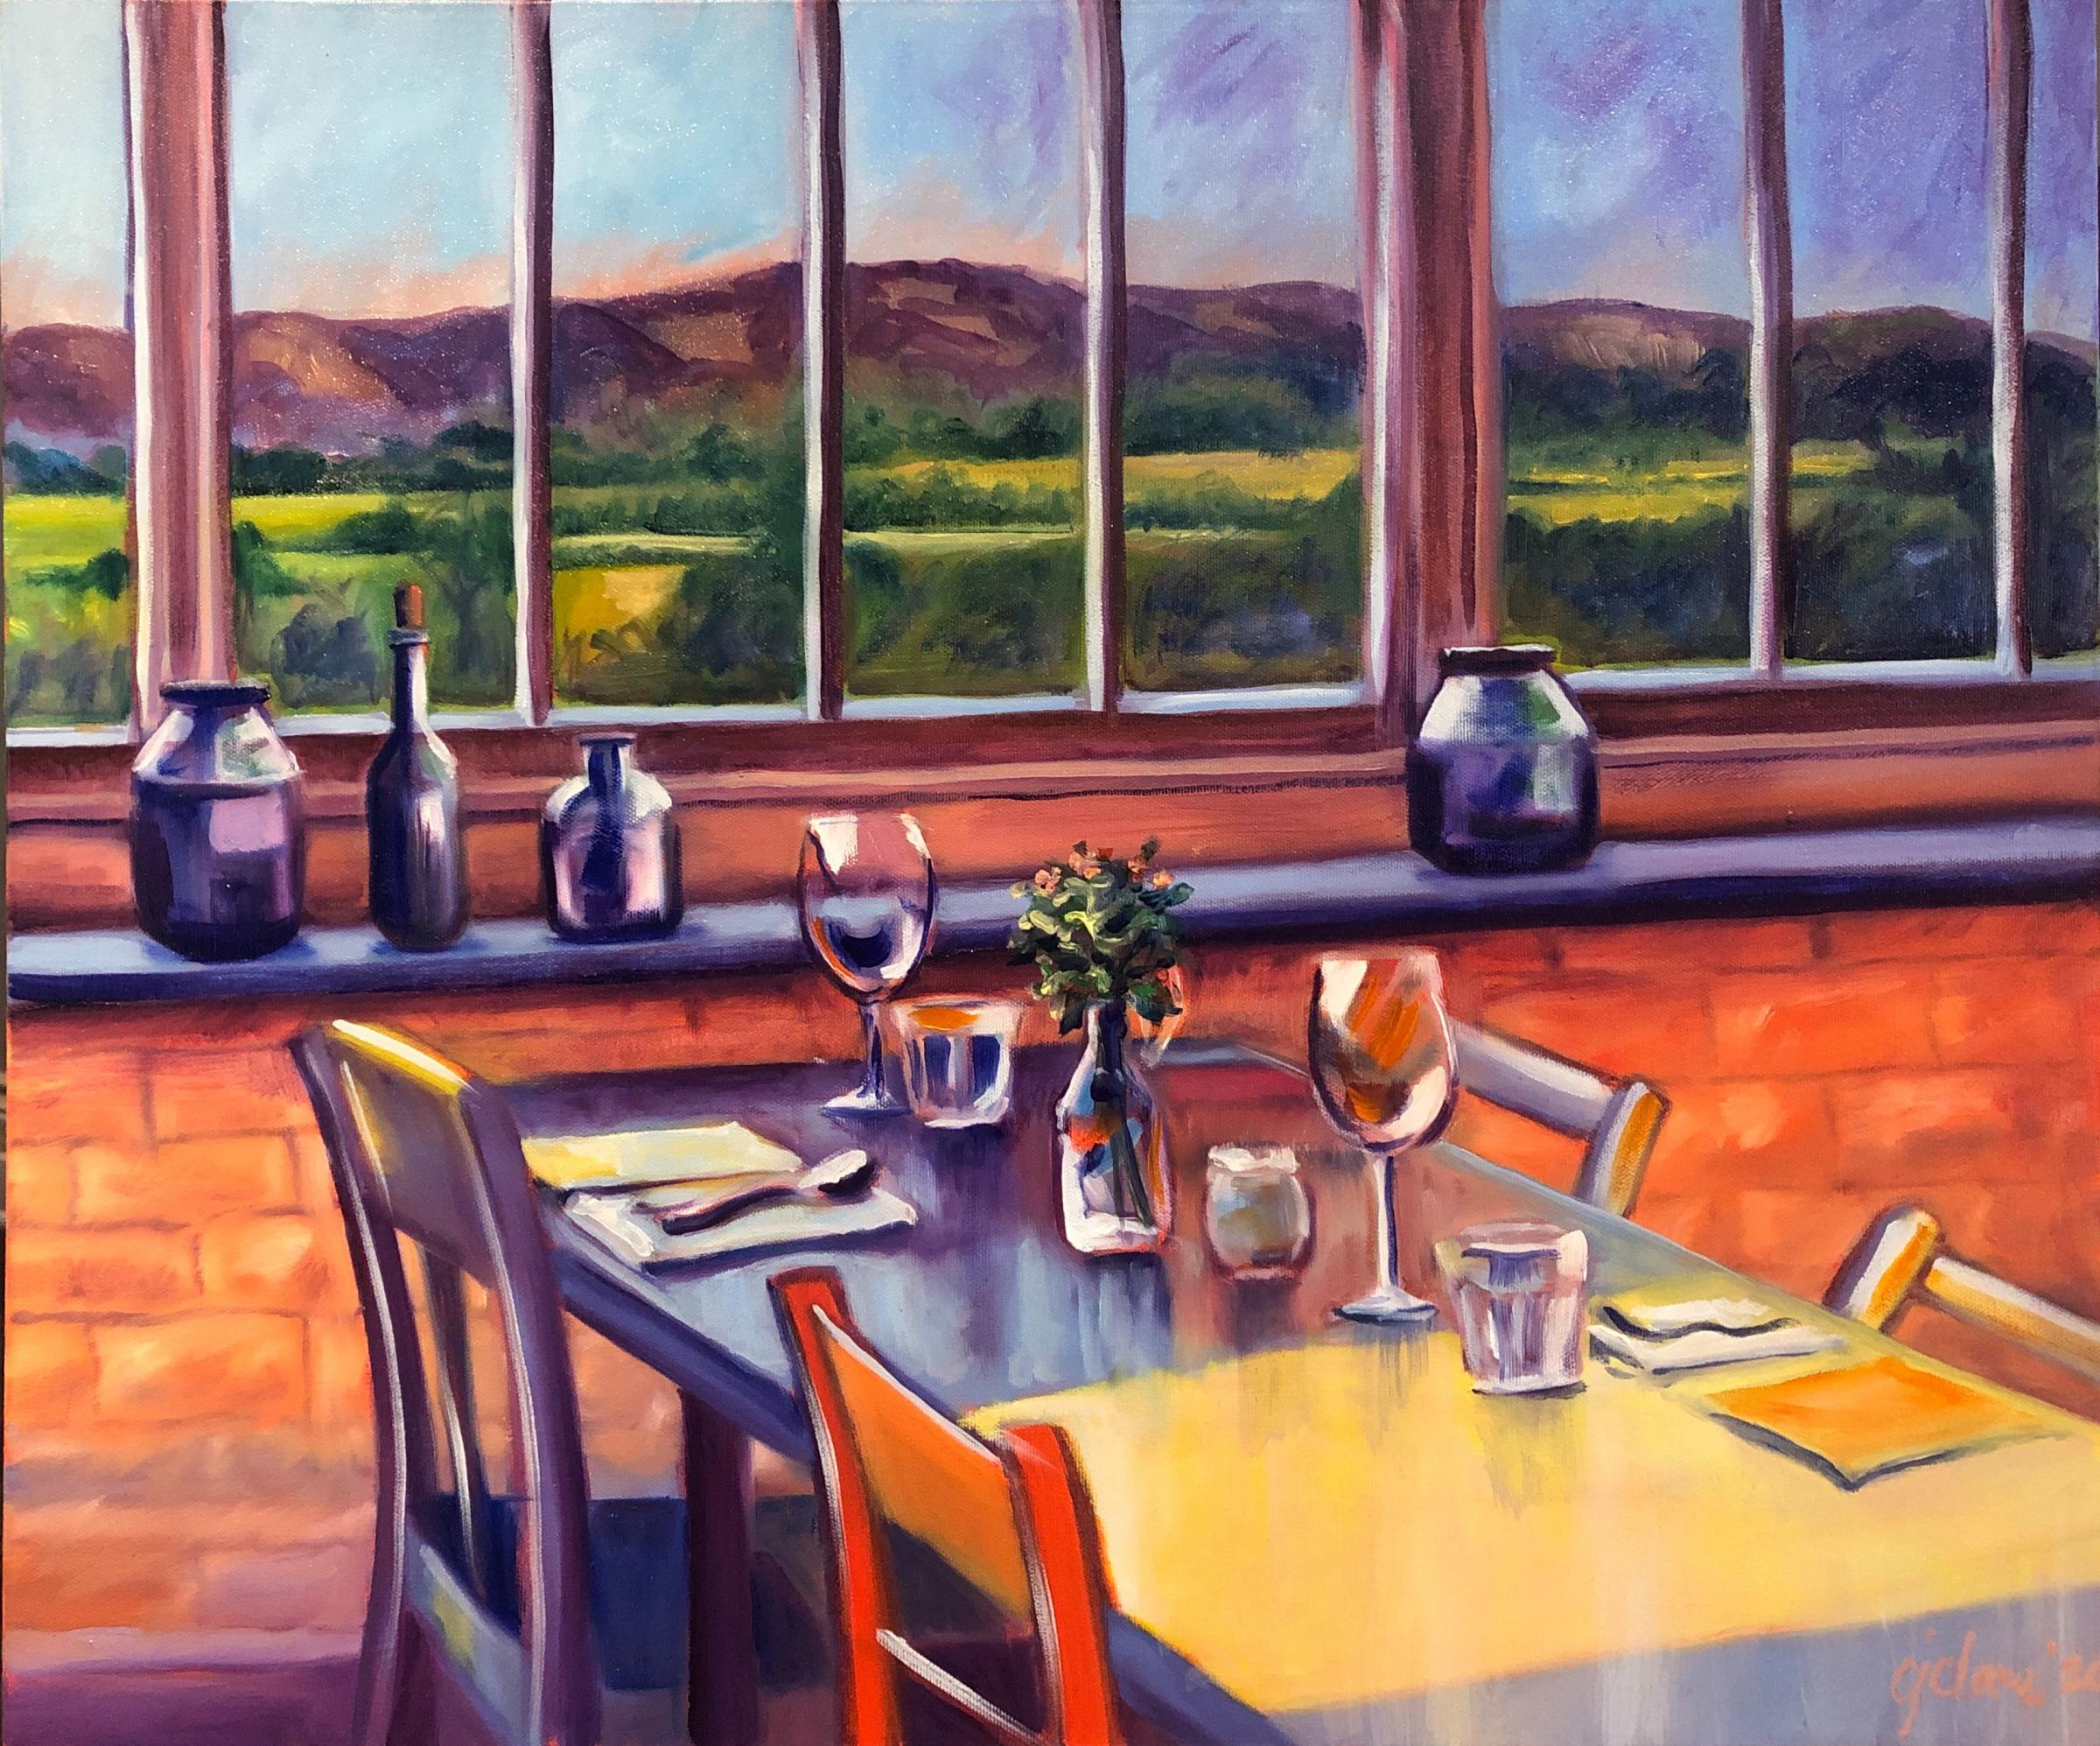 Room with a View by Christina Clare